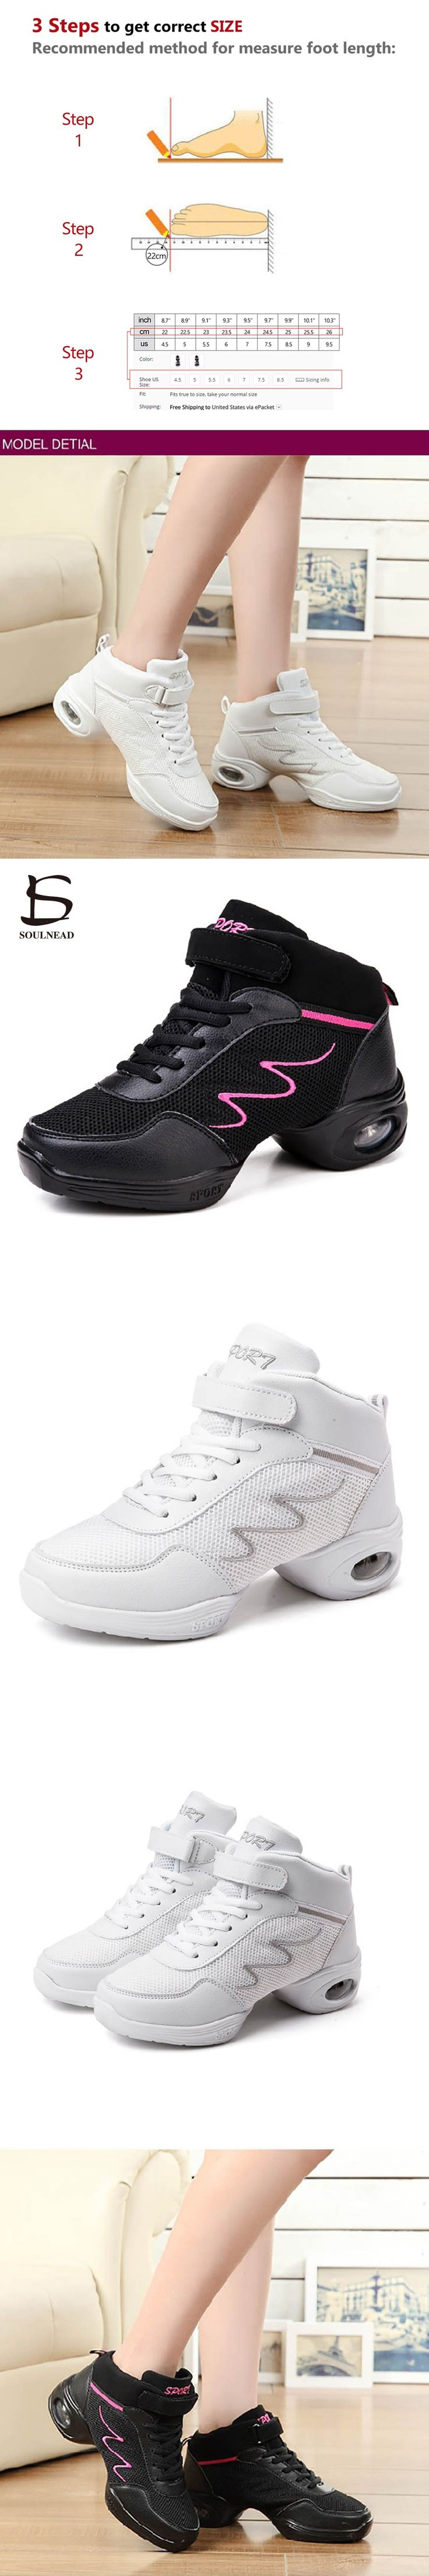 New Sports Air Mesh Soft Outsole Breath Dance Shoes Sneakers For Woman Practice Shoes Modern Dance Jazz Shoes Discount 952